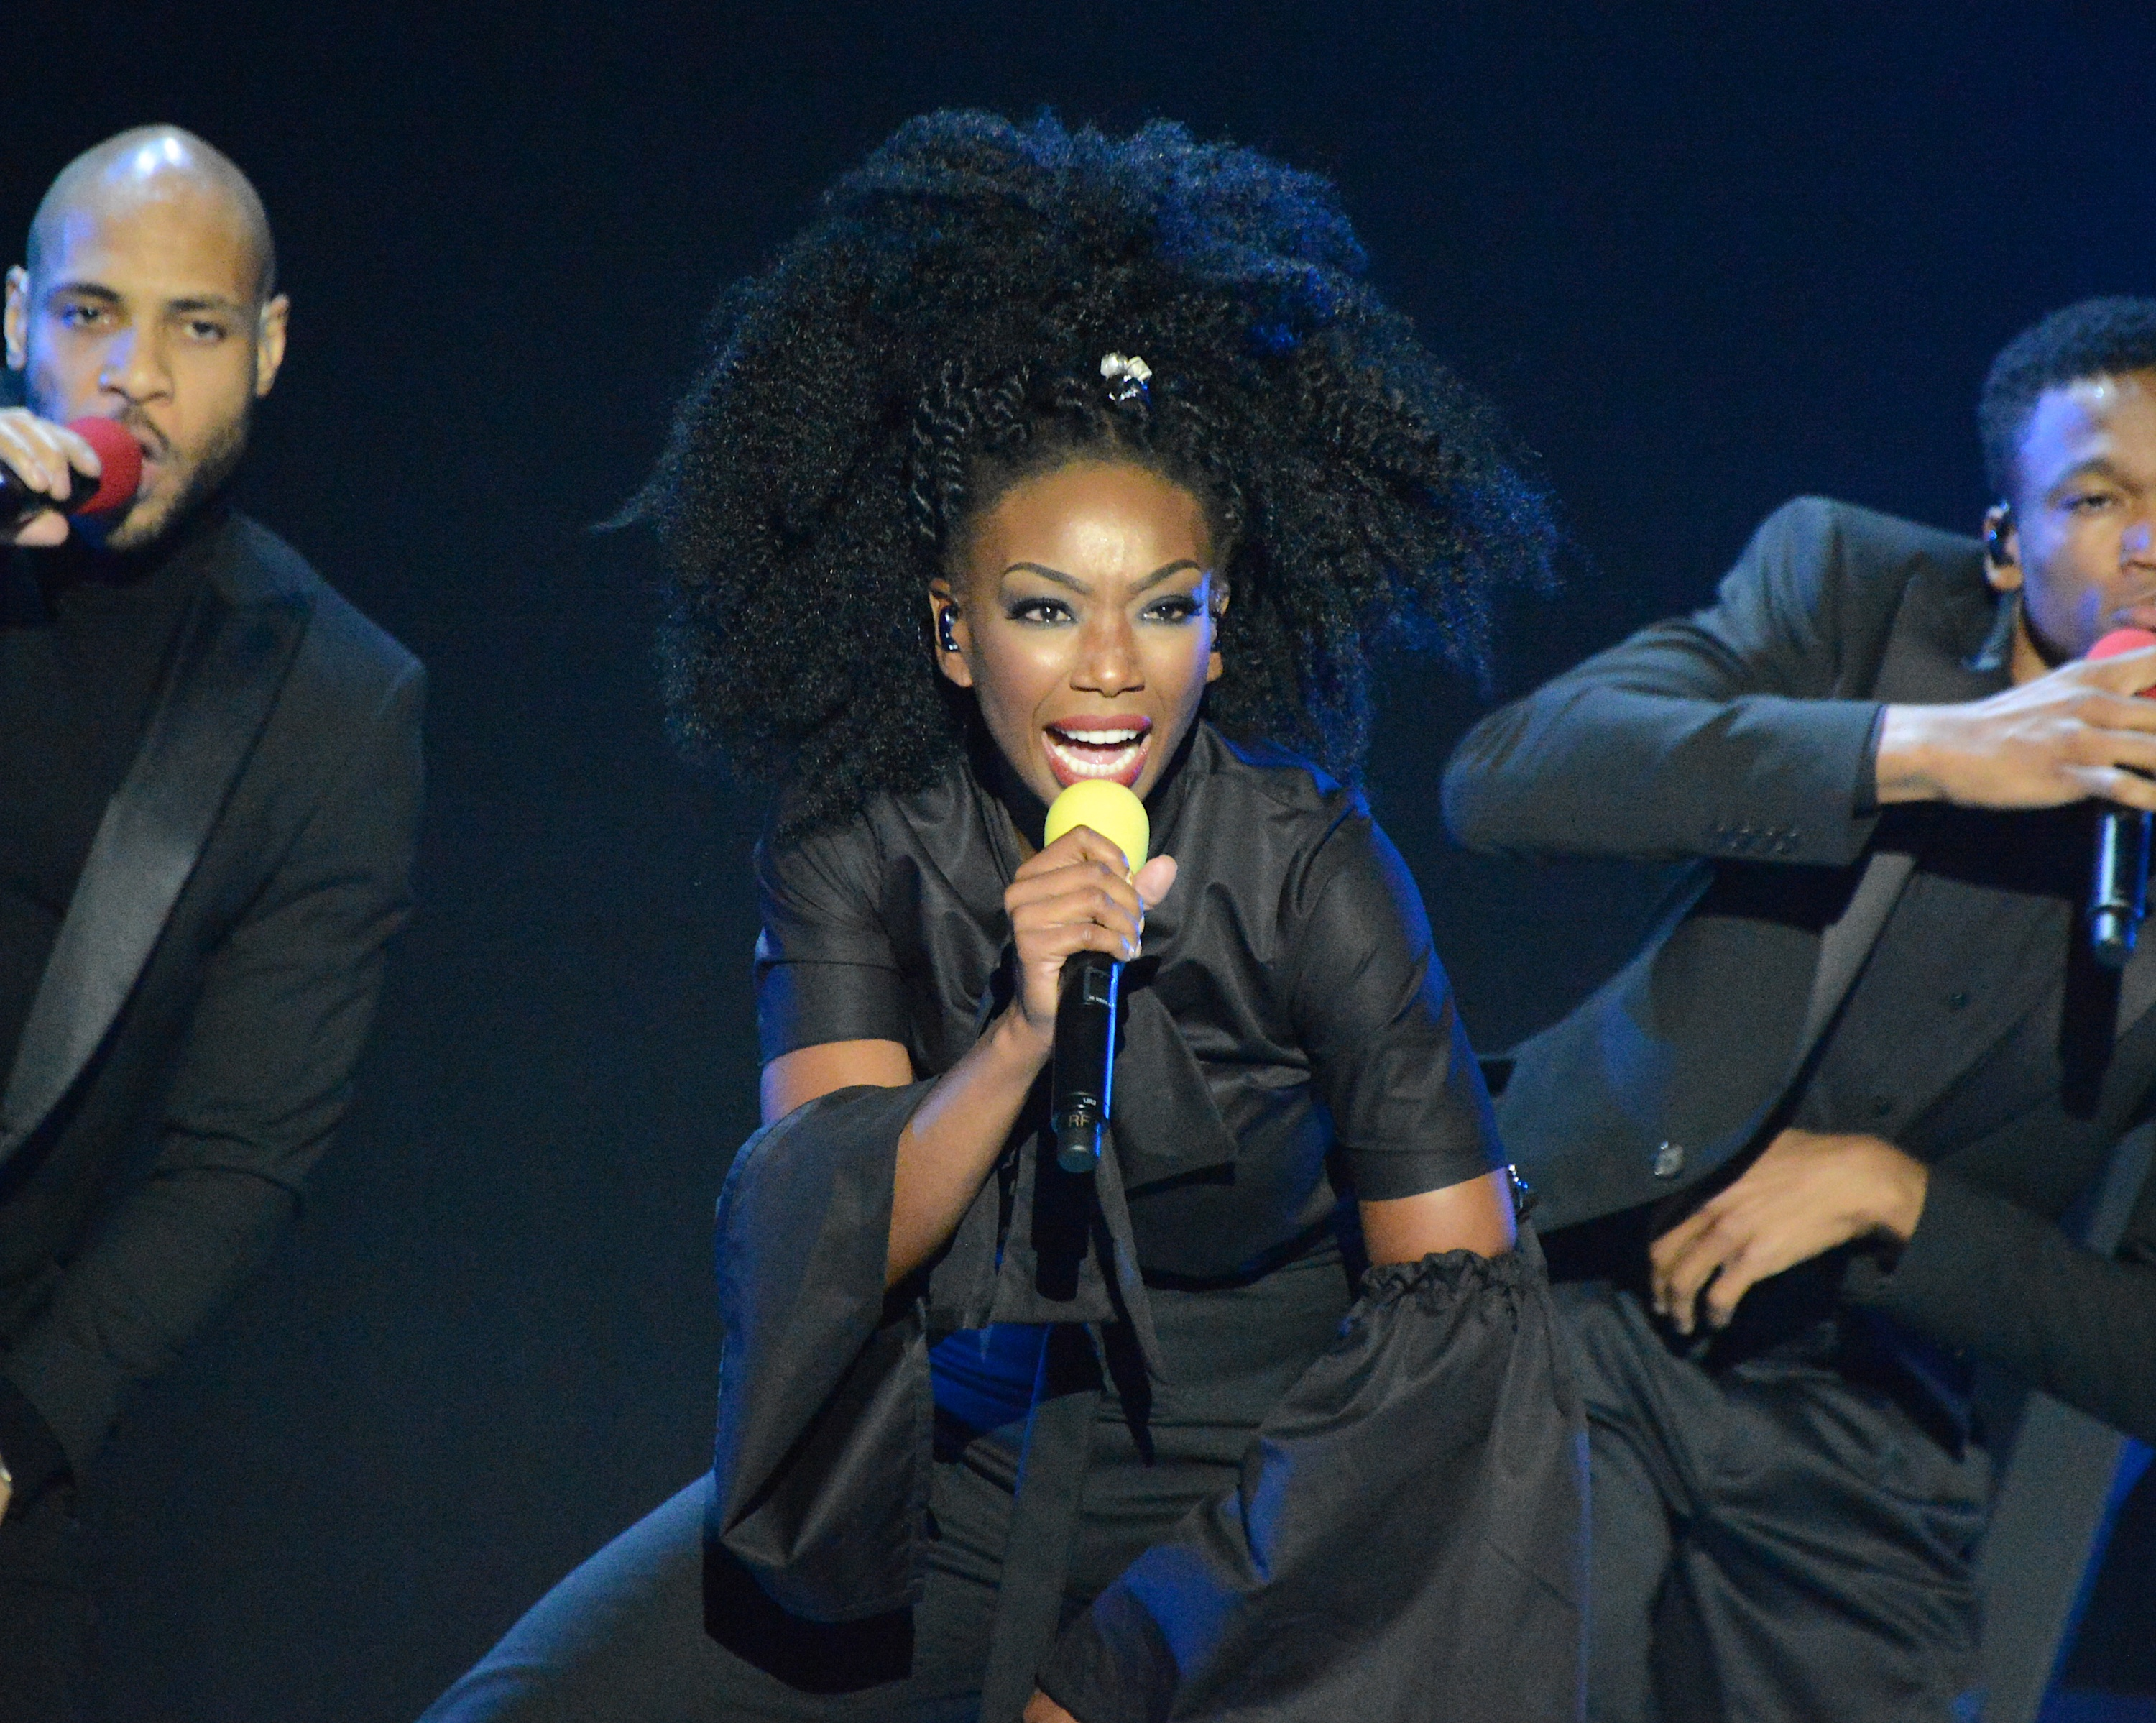 LAS VEGAS, NV - NOVEMBER 06:  Honoree Brandy performs onstage during the 2016 Soul Train Music Awards at the Orleans Arena on November 6, 2016 in Las Vegas, Nevada.  (Photo by Mindy Small/FilmMagic)